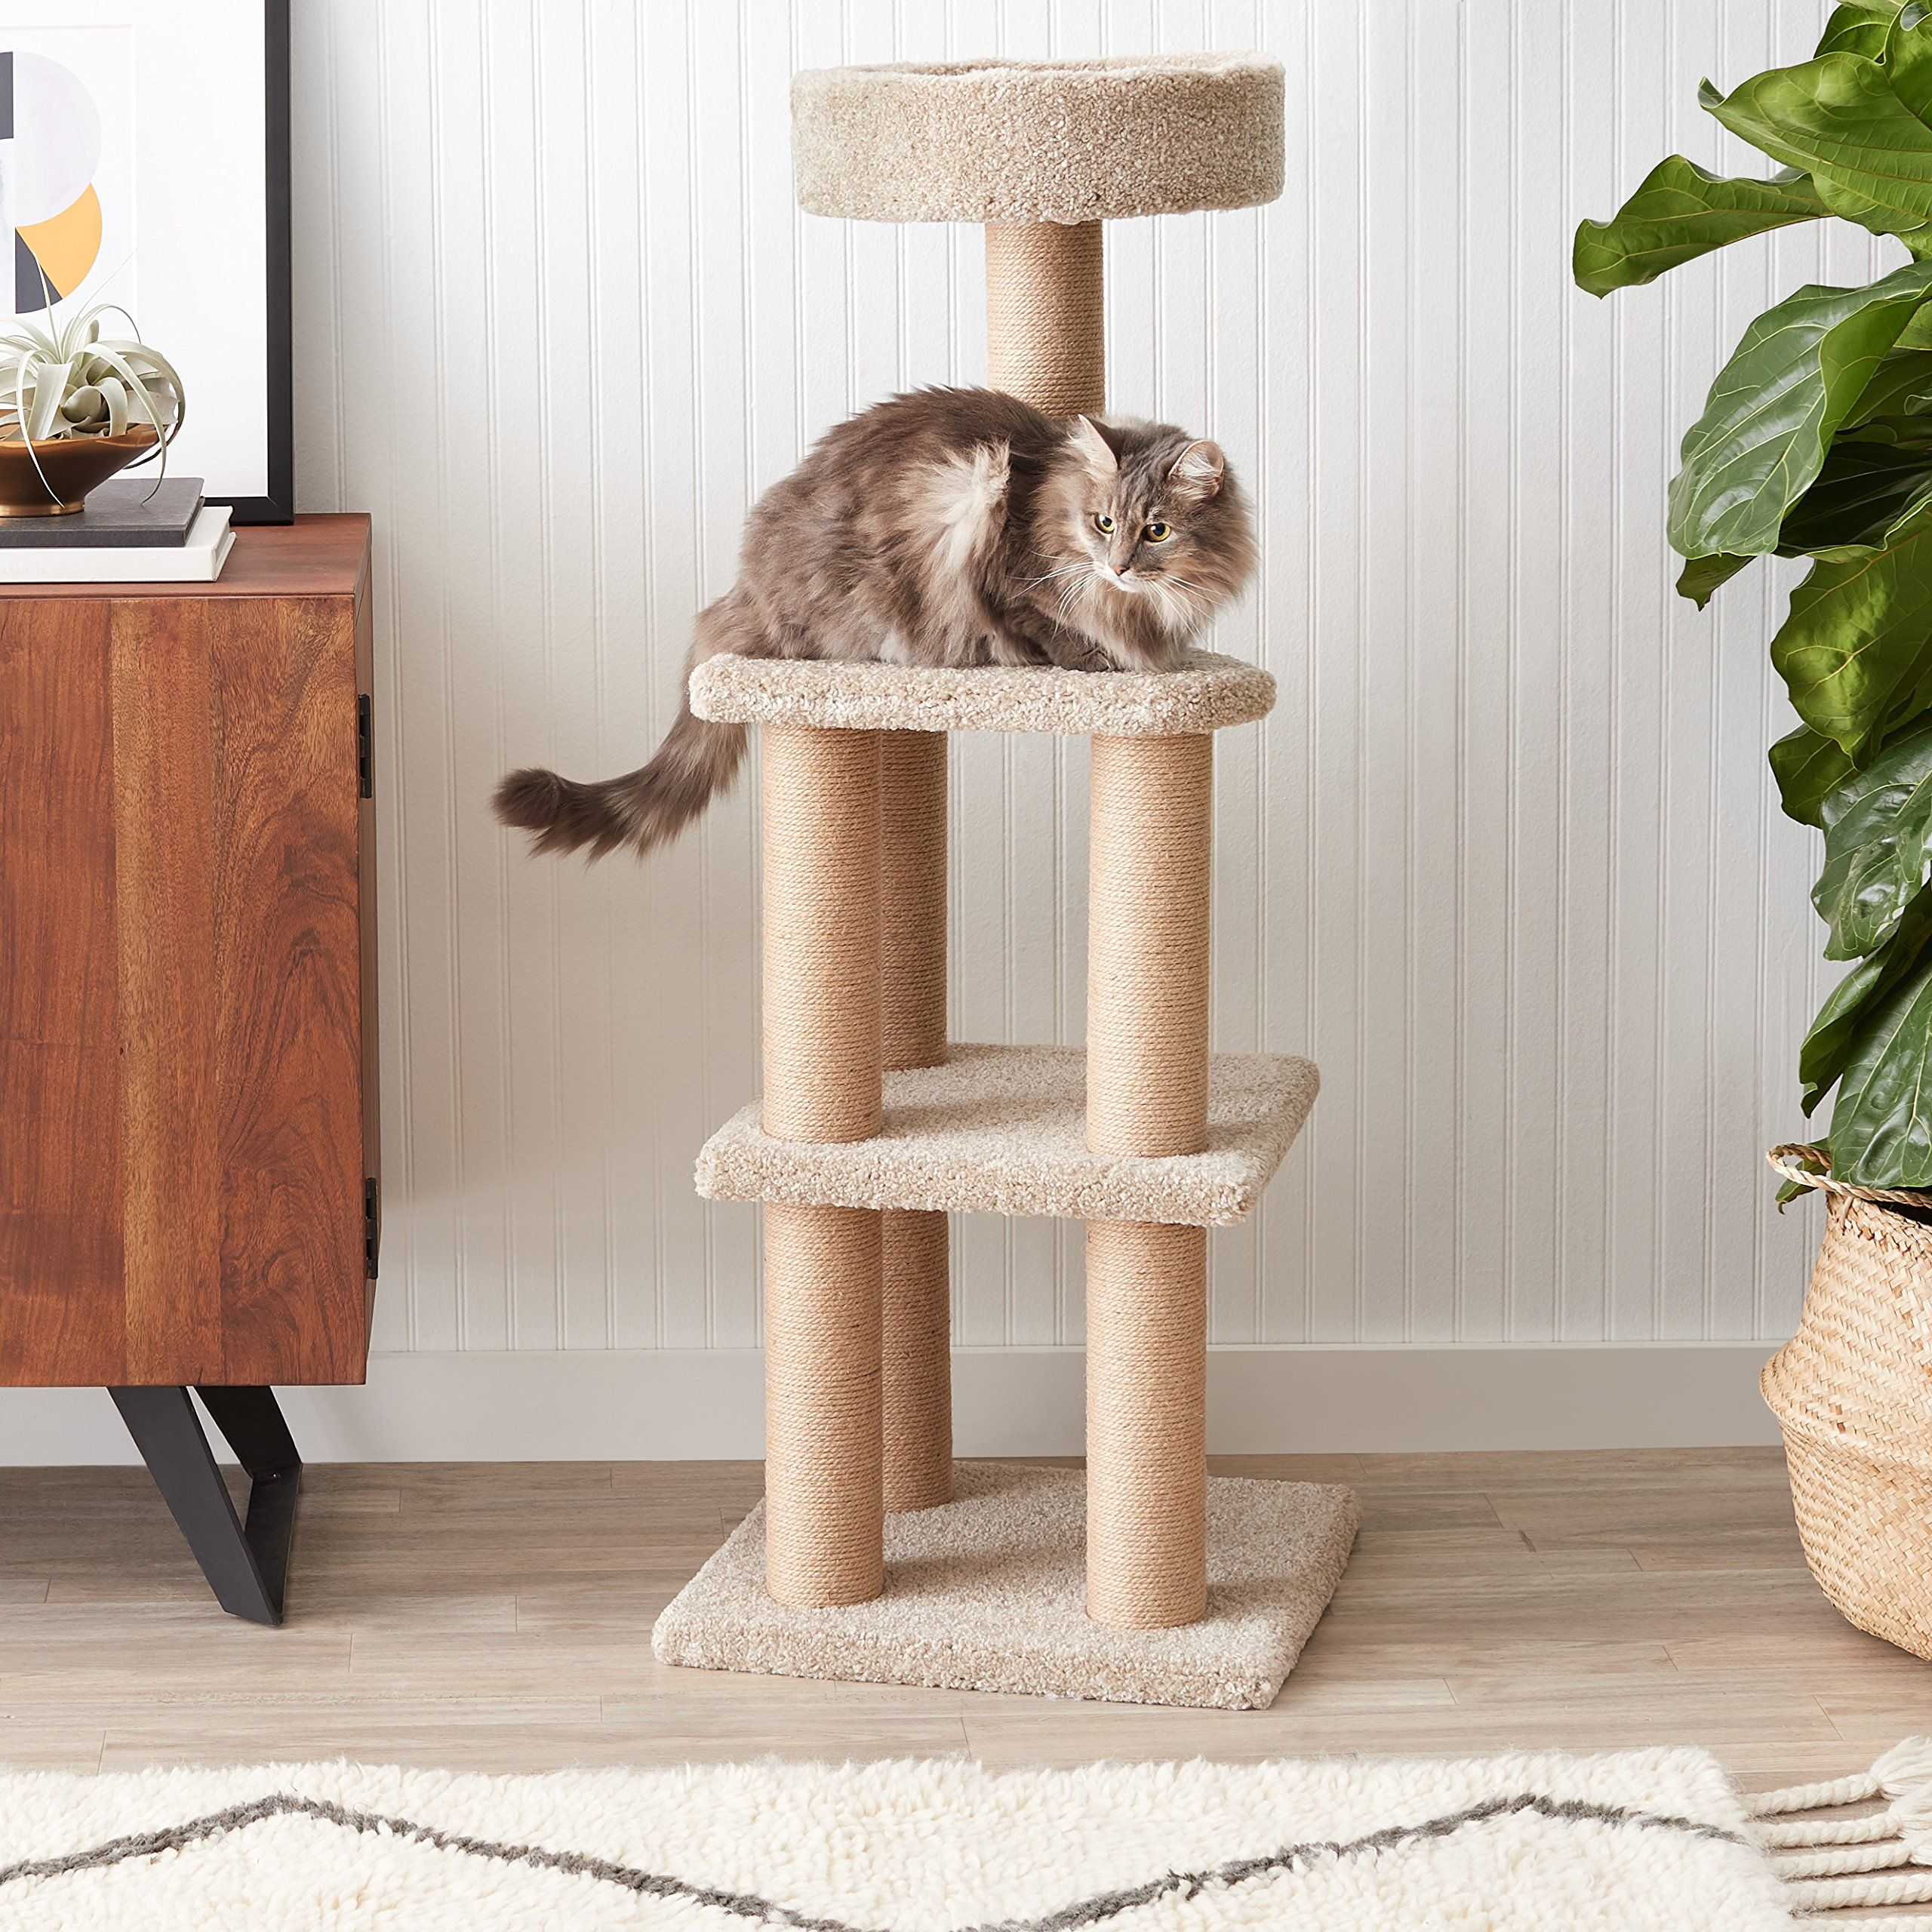 Amazonbasics Cat Tree With Scratching Posts Large Want To Know